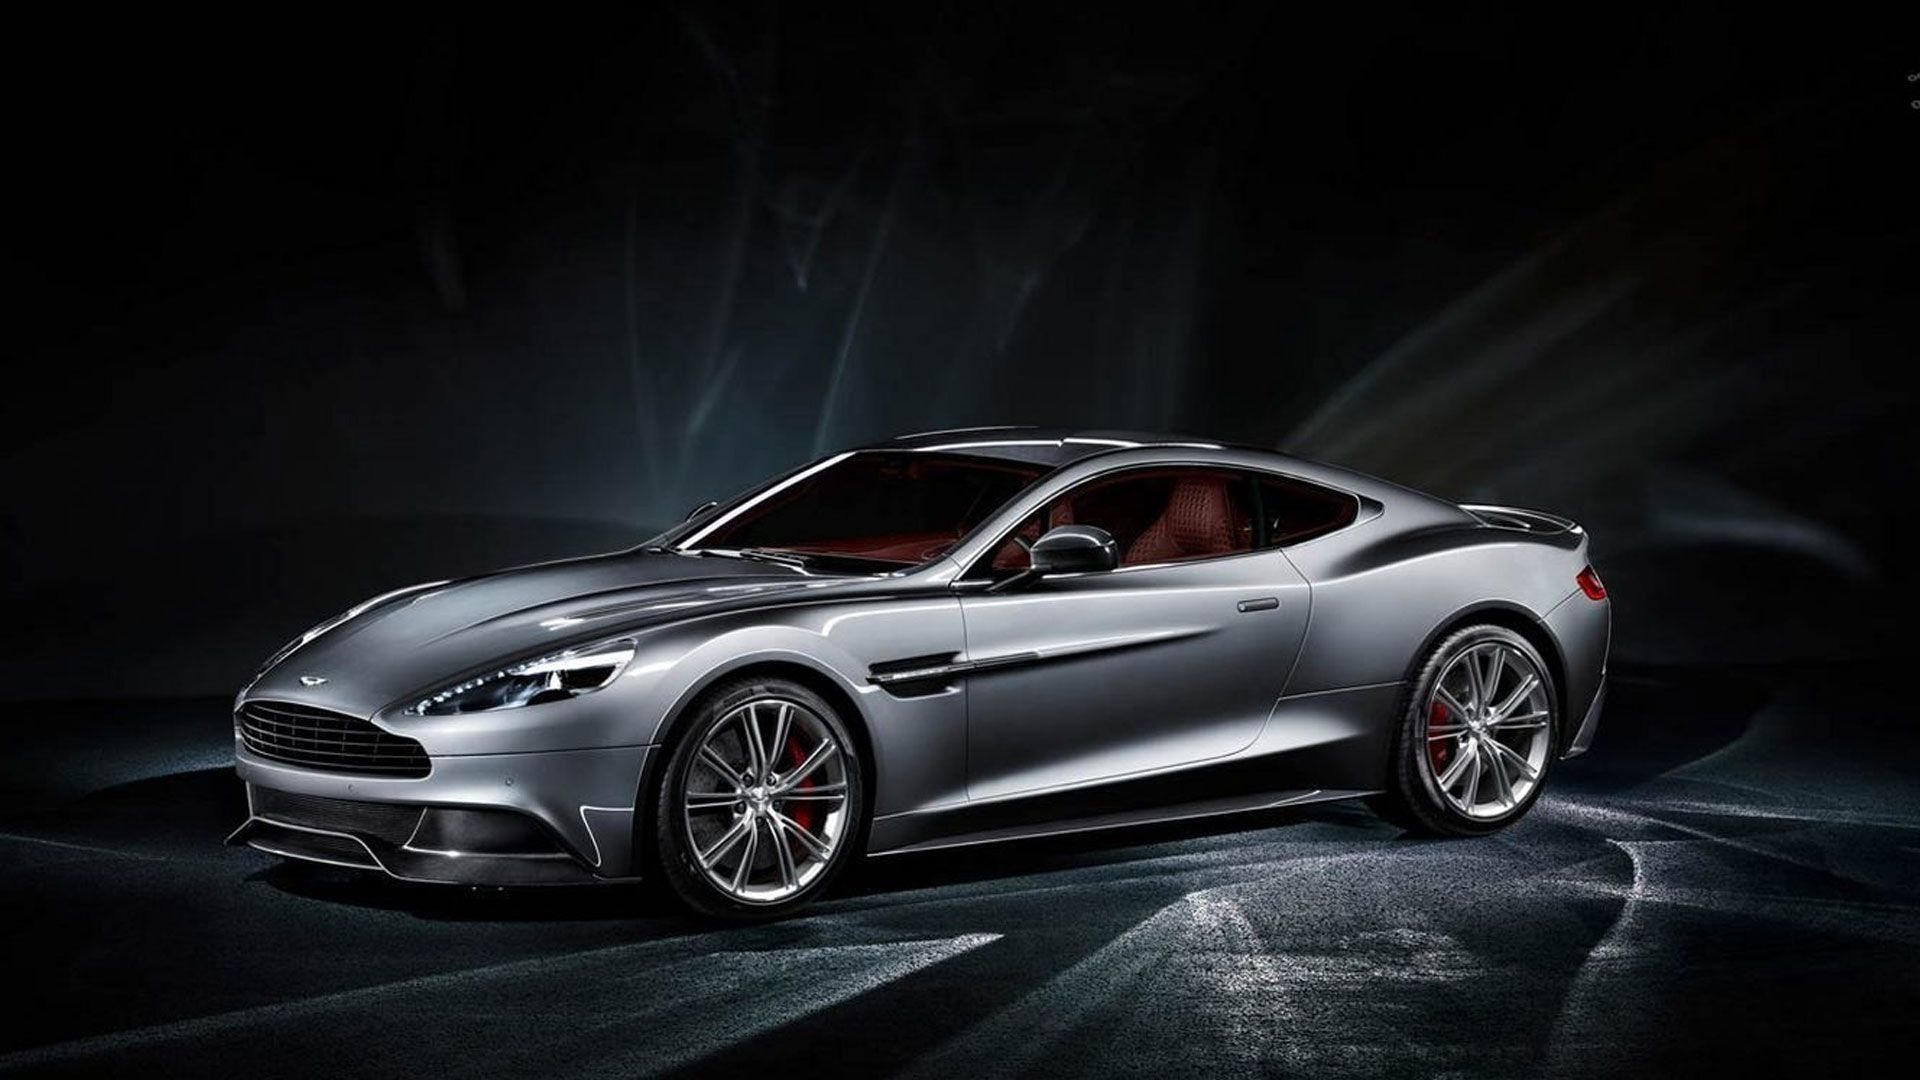 Aston Martin Vanquish Wallpapers For Iphone